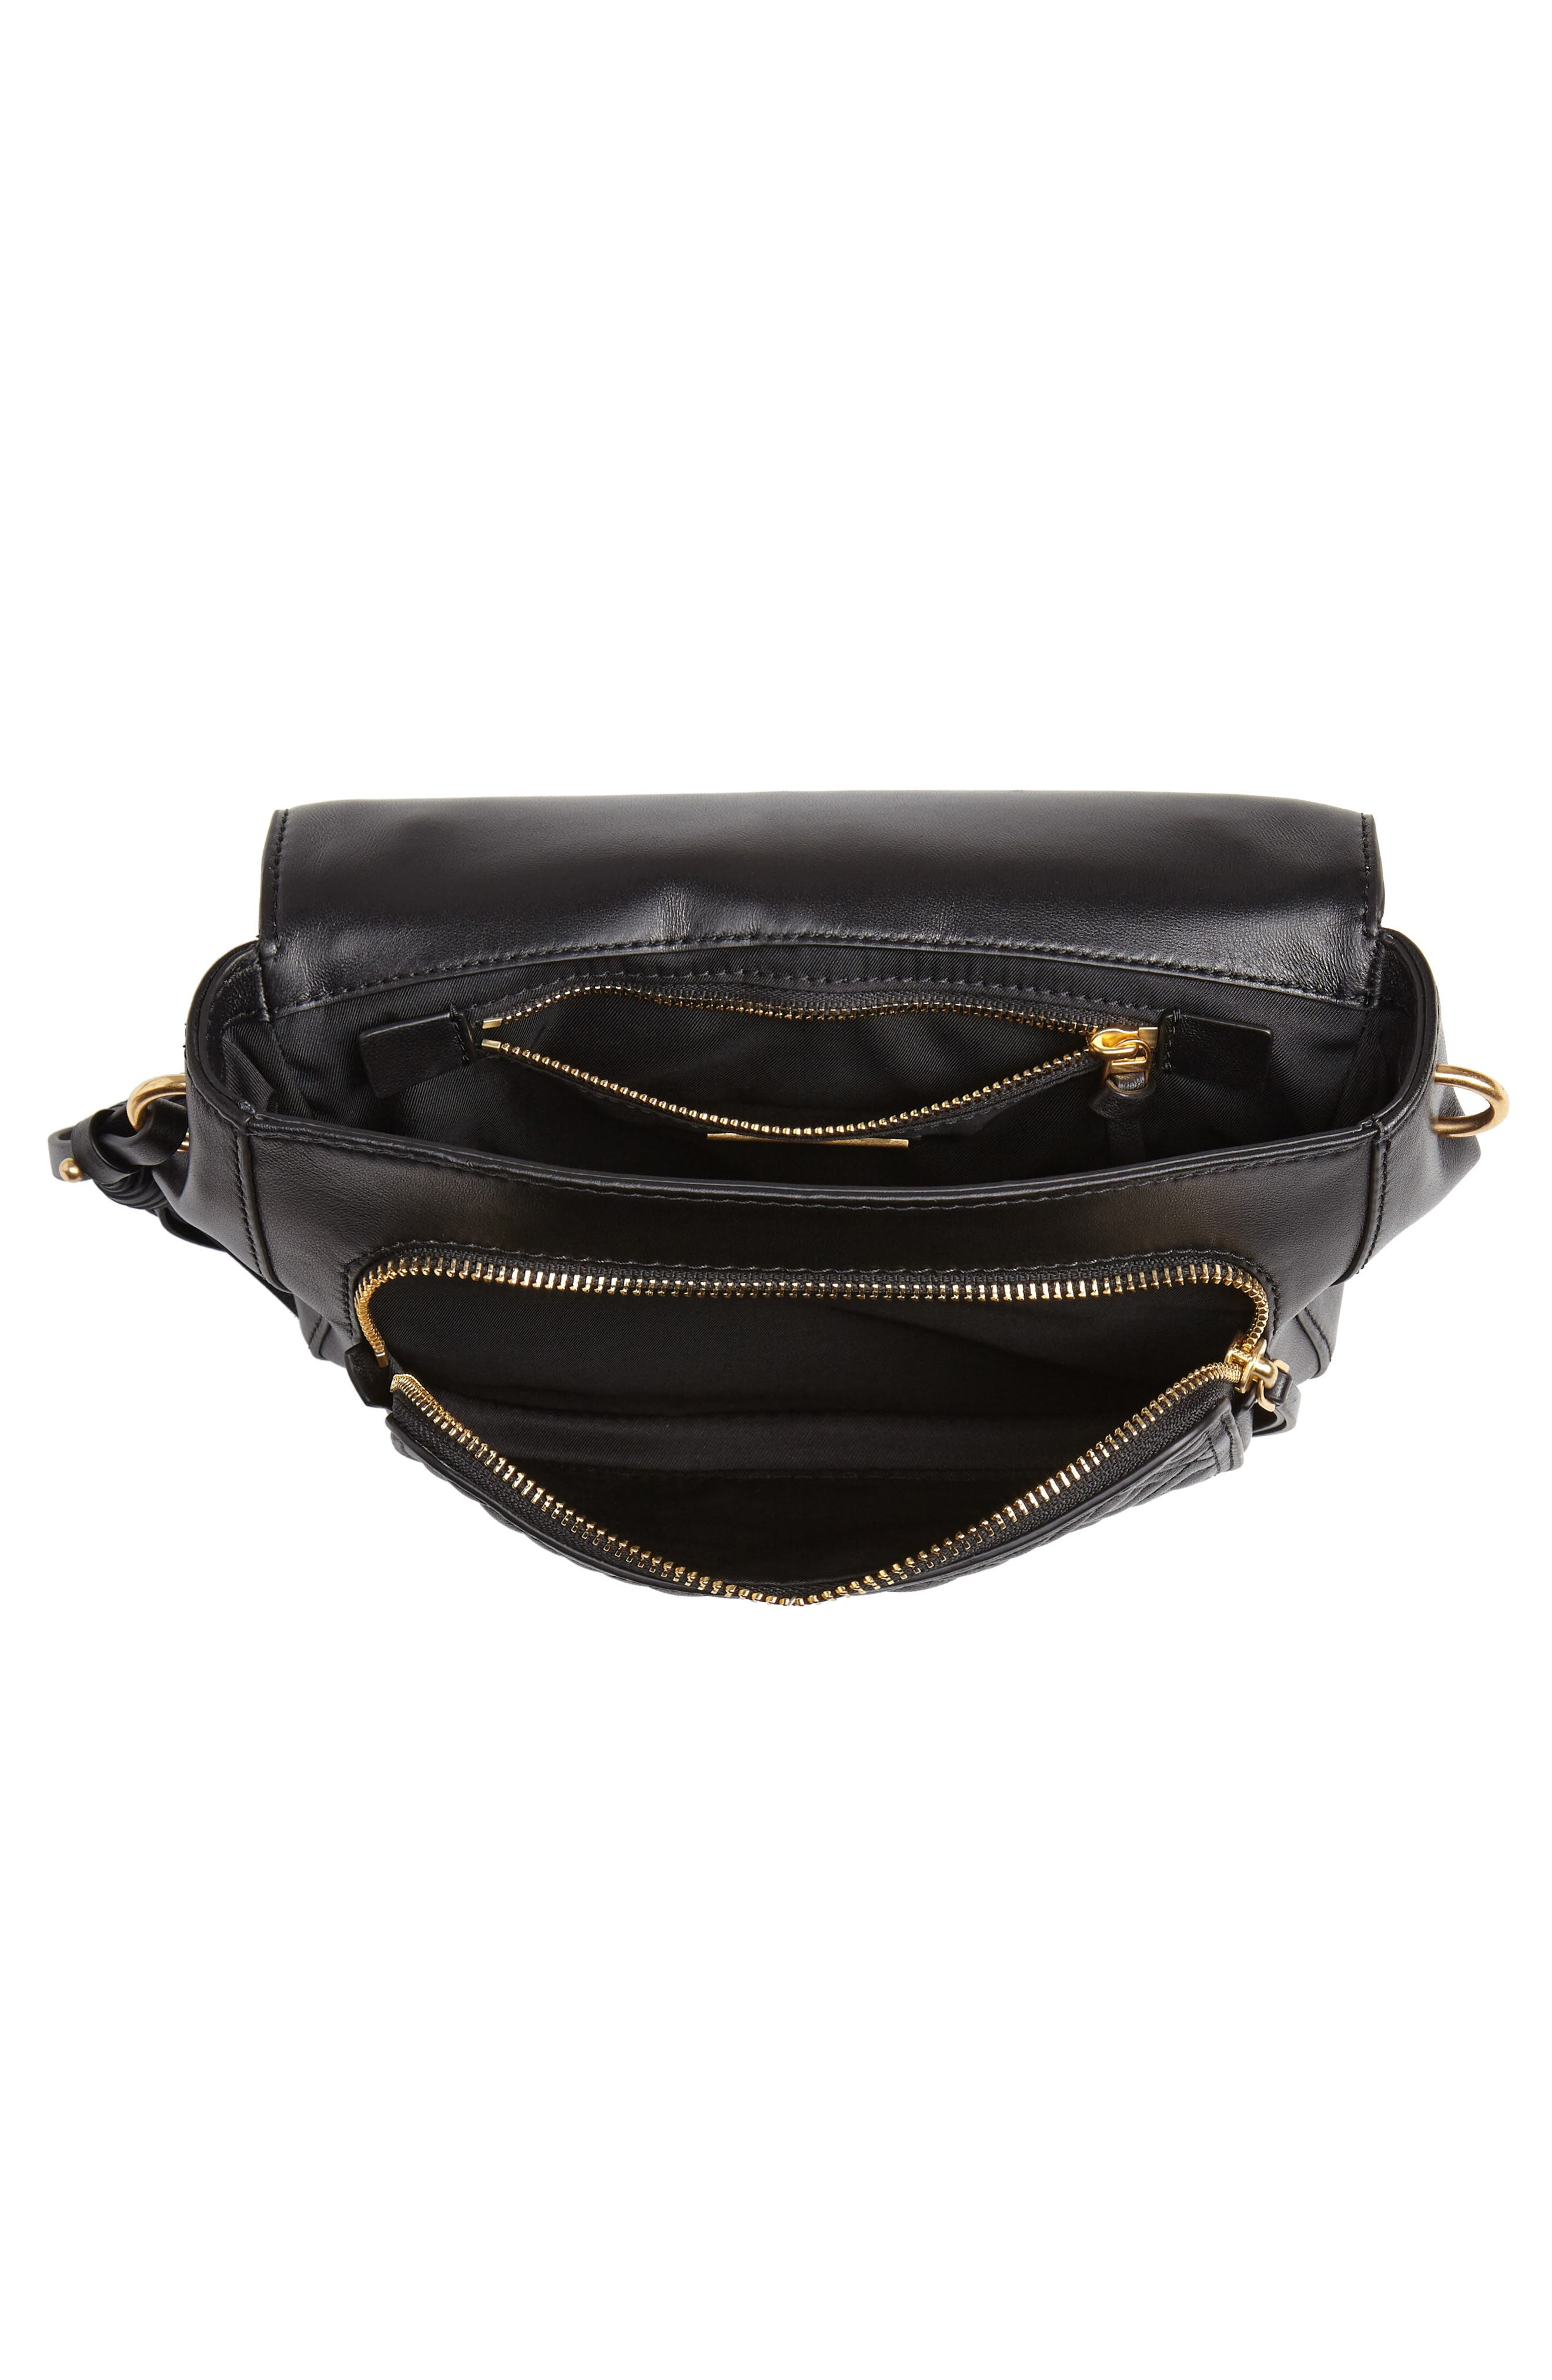 TORY BURCH,                             Fleming Quilted Leather Top Handle Satchel,                             Alternate thumbnail 4, color,                             BLACK